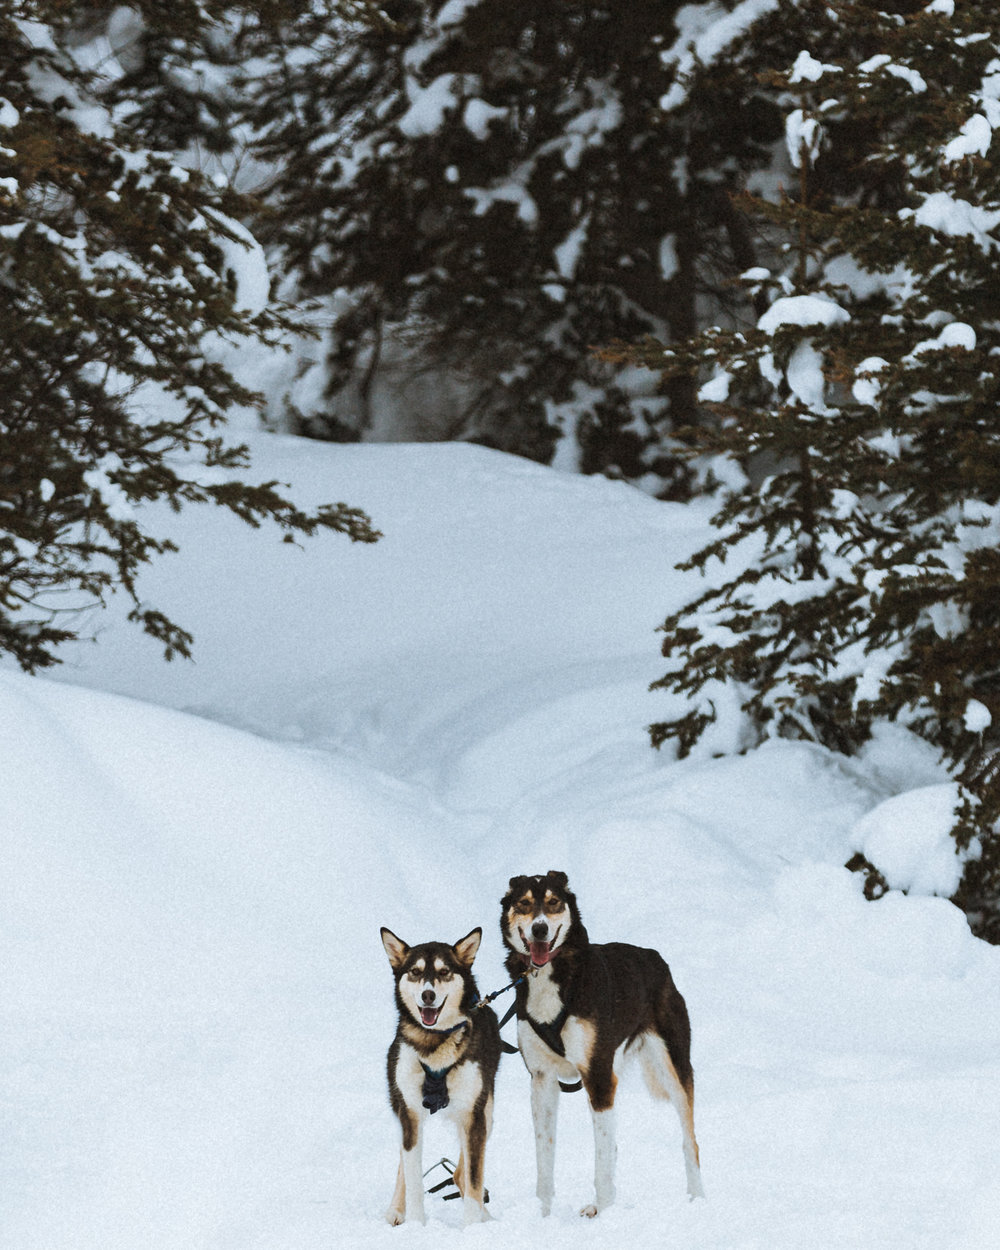 Two mushers I found at the continental divide trail